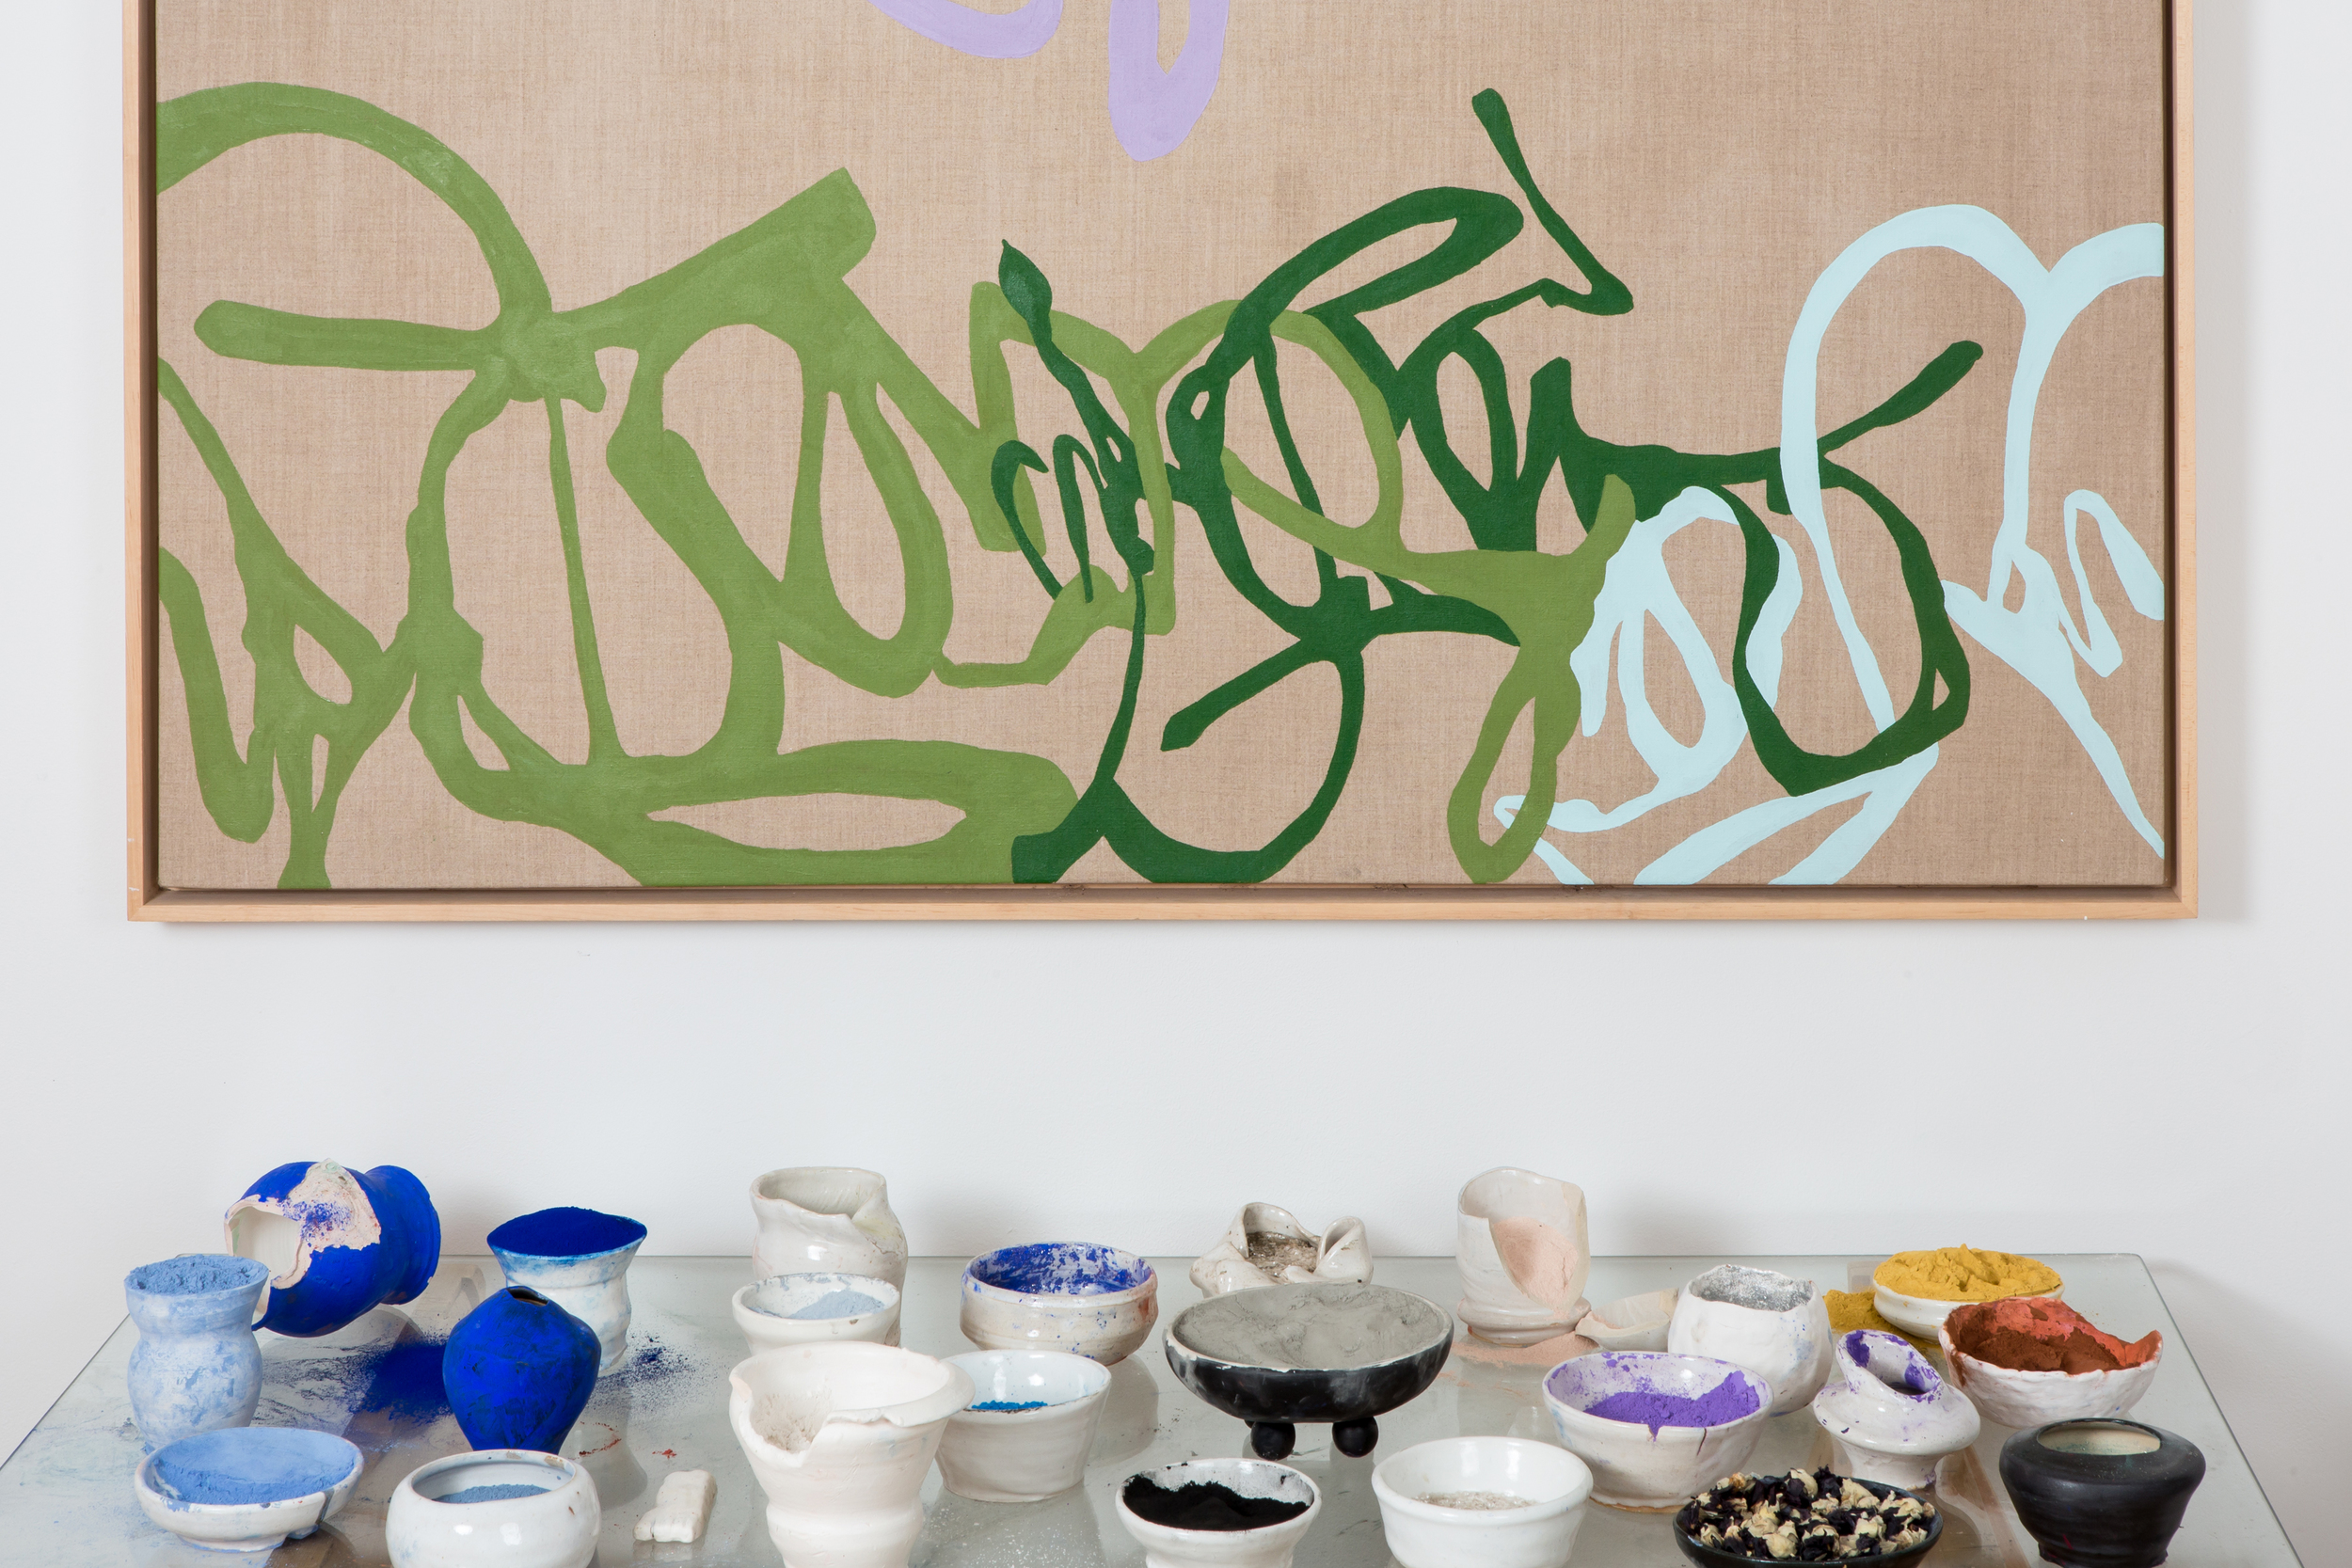 """Carolyn Carr  Detail from  Table from the Painter's Studio , 1996-2016  comprising:   The Painter's Table , 1996-2016  Lizella Clay stoneware vessels, artist glazes, natural and mineral pigments, wood, plaster, glass  58"""" x 28"""" x 28""""    (ON WALL)  Uncharted Path , 2007  Pigments and latex on linen, 48"""" x 60""""  Photo by Marcie Revens."""